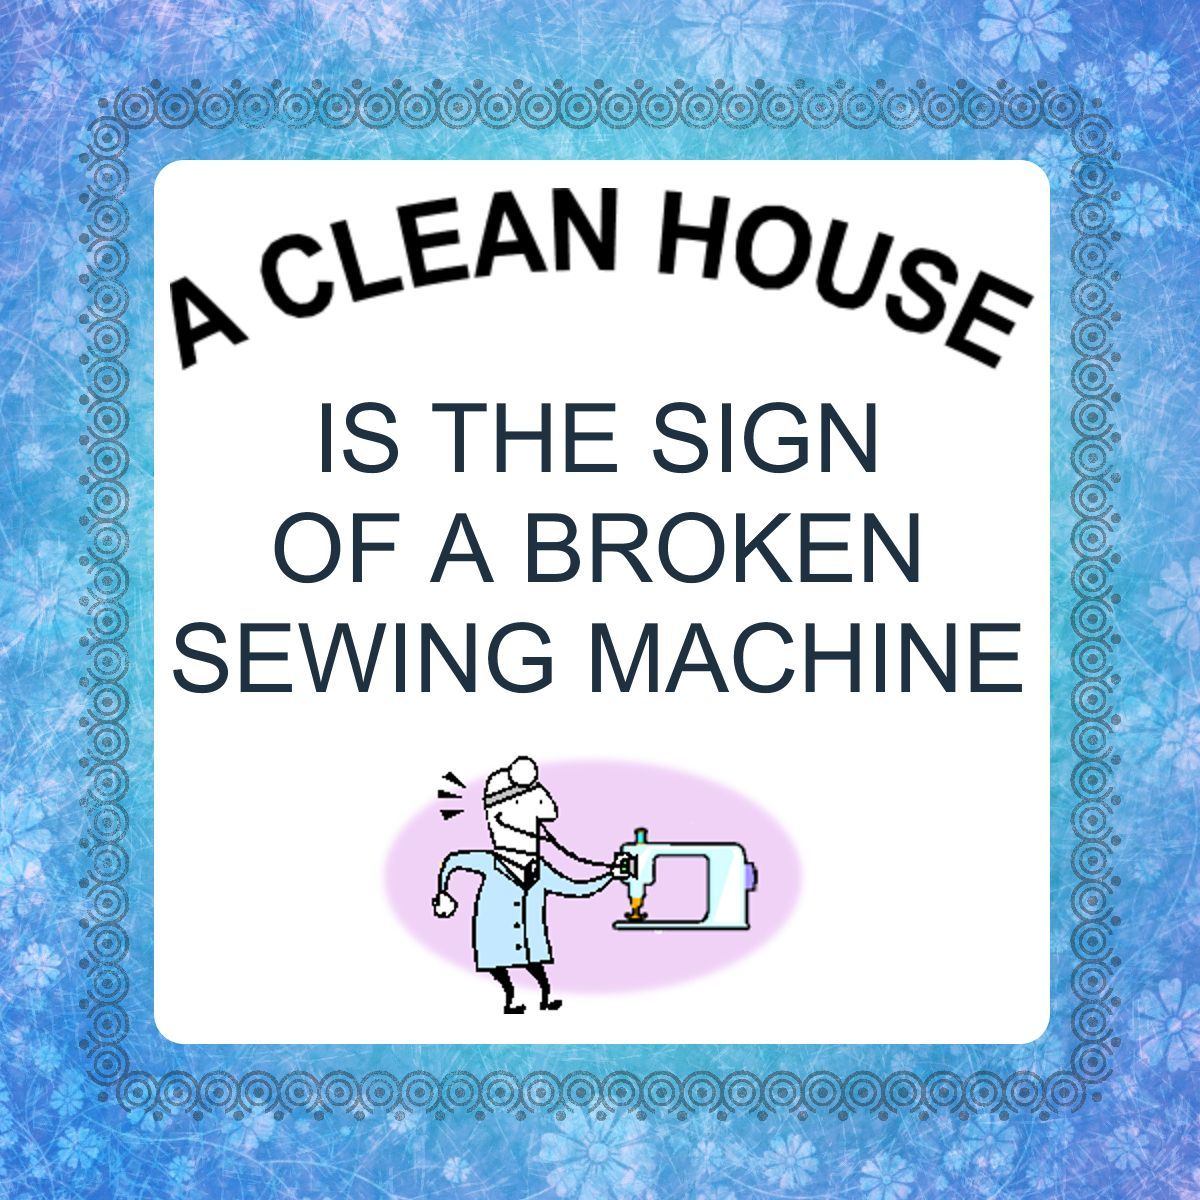 But a broken sewing machine does not guarantee a clean house.